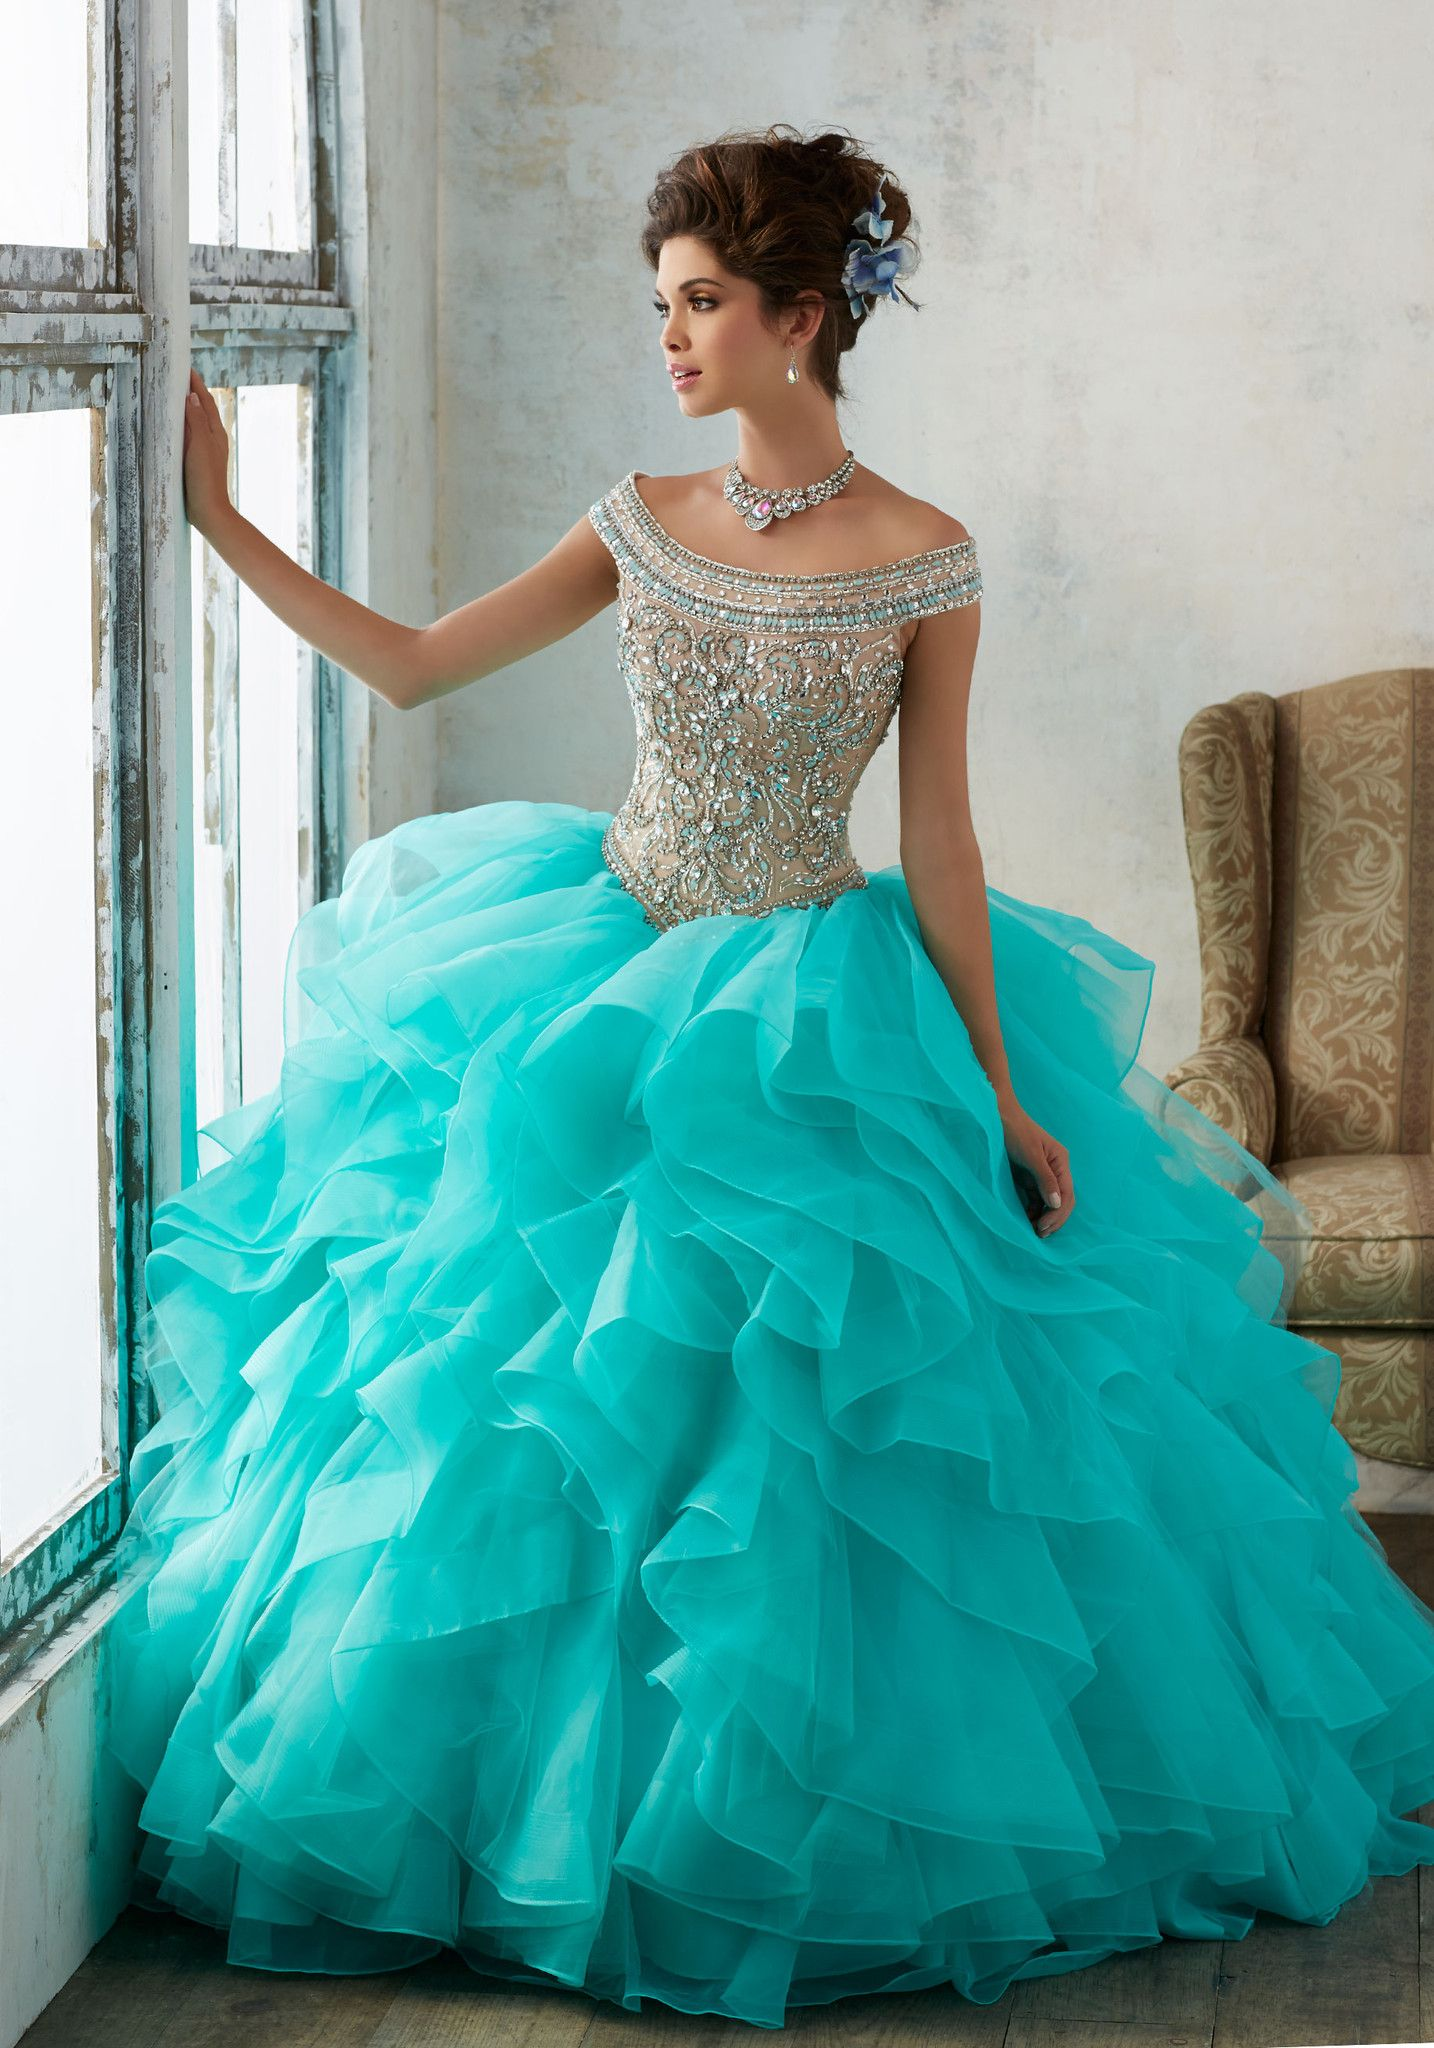 40612703341 Quinceanera Dress 89138 Vizcaya Collection. Quinceanera Dress 89138 Vizcaya  Collection Vestido De Xv Modernos